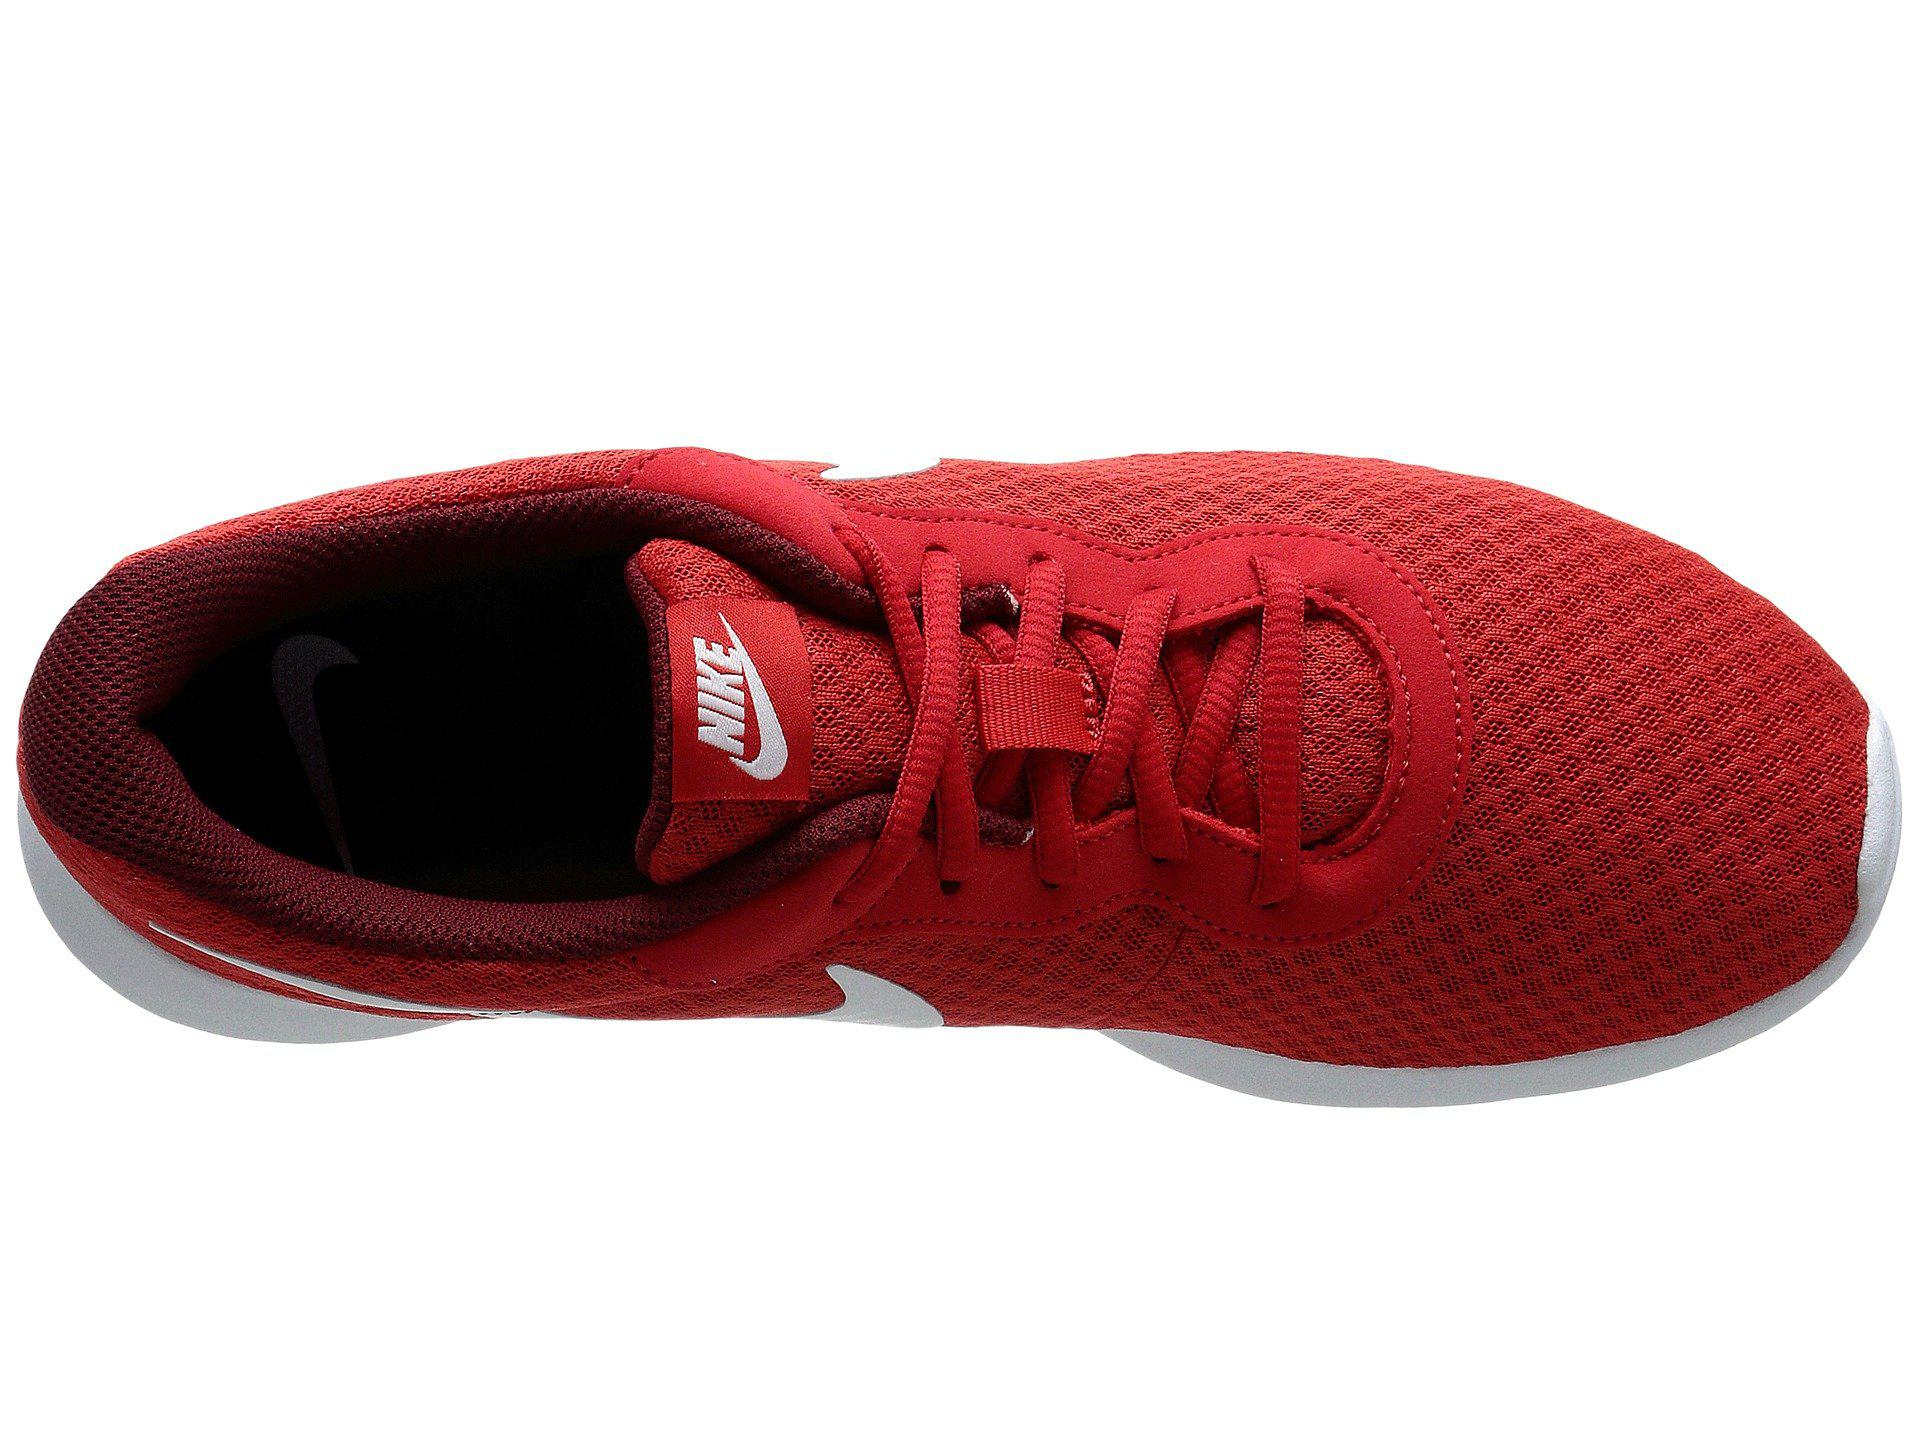 reputable site 92fc0 30dff ... promo code nike tanjun university red team red white mens running shoes  for. view fullscreen